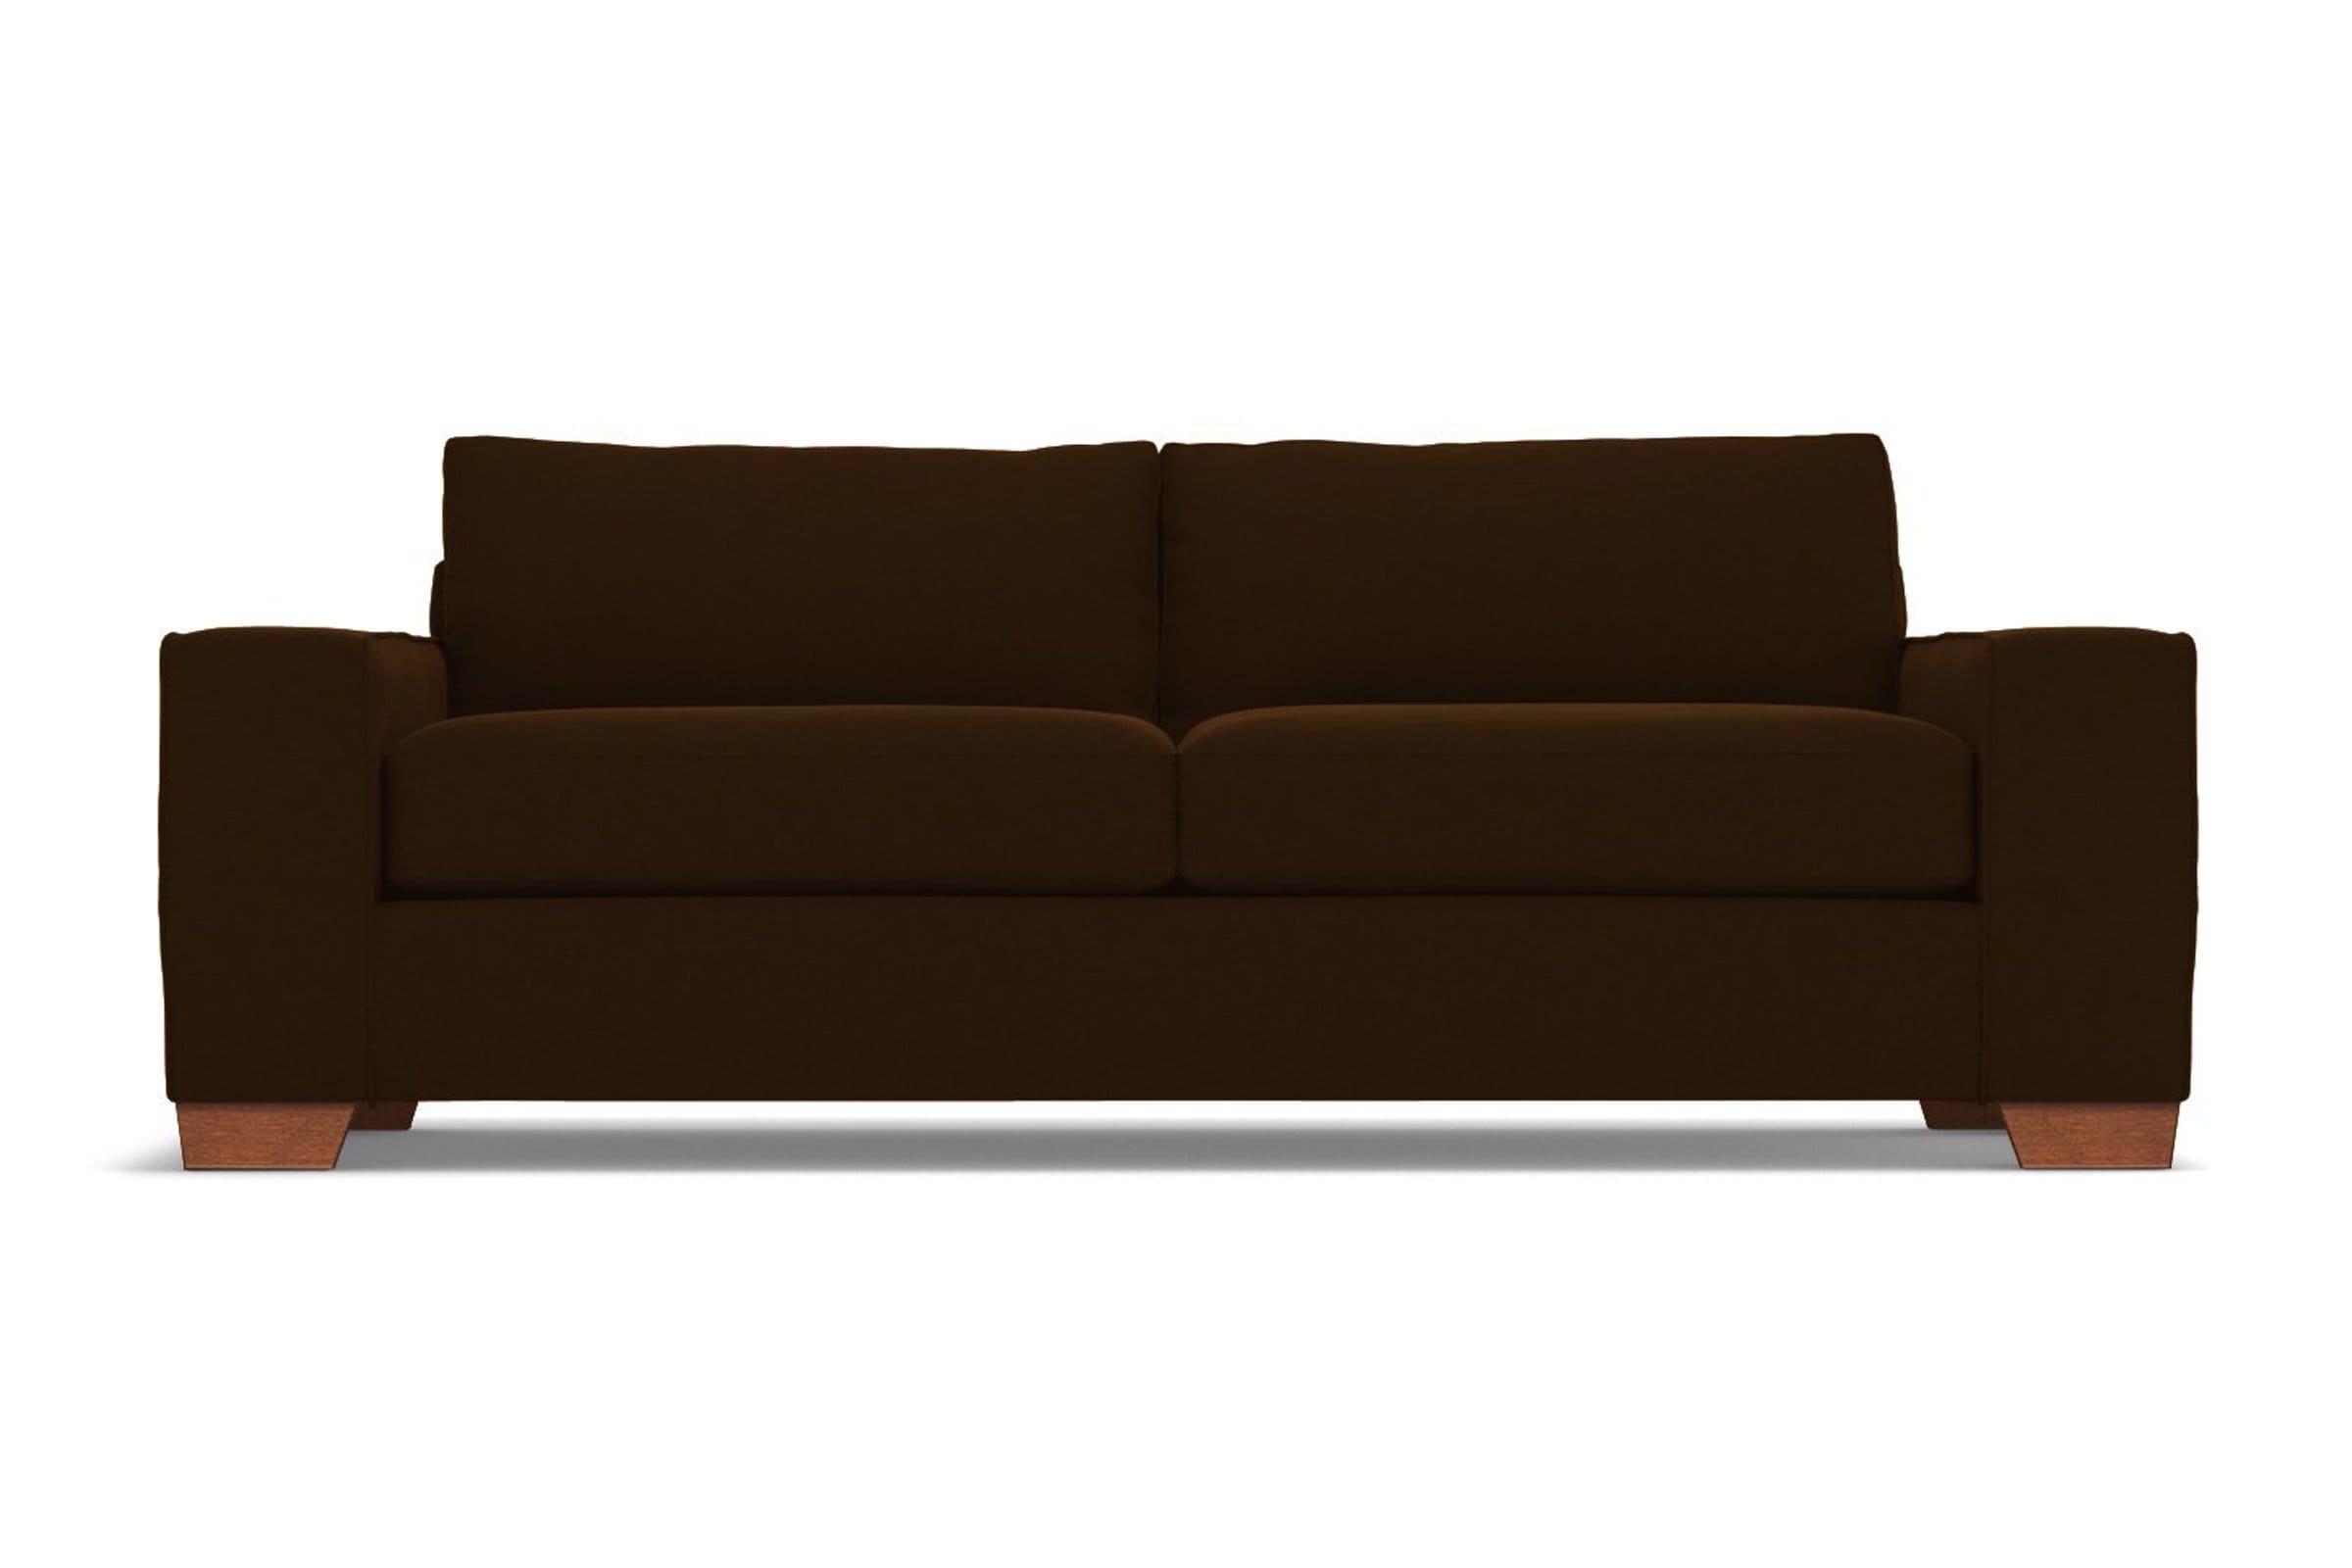 Melrose Sofa - Brown - Modern Couch Made in the USA - Sold by Apt2B